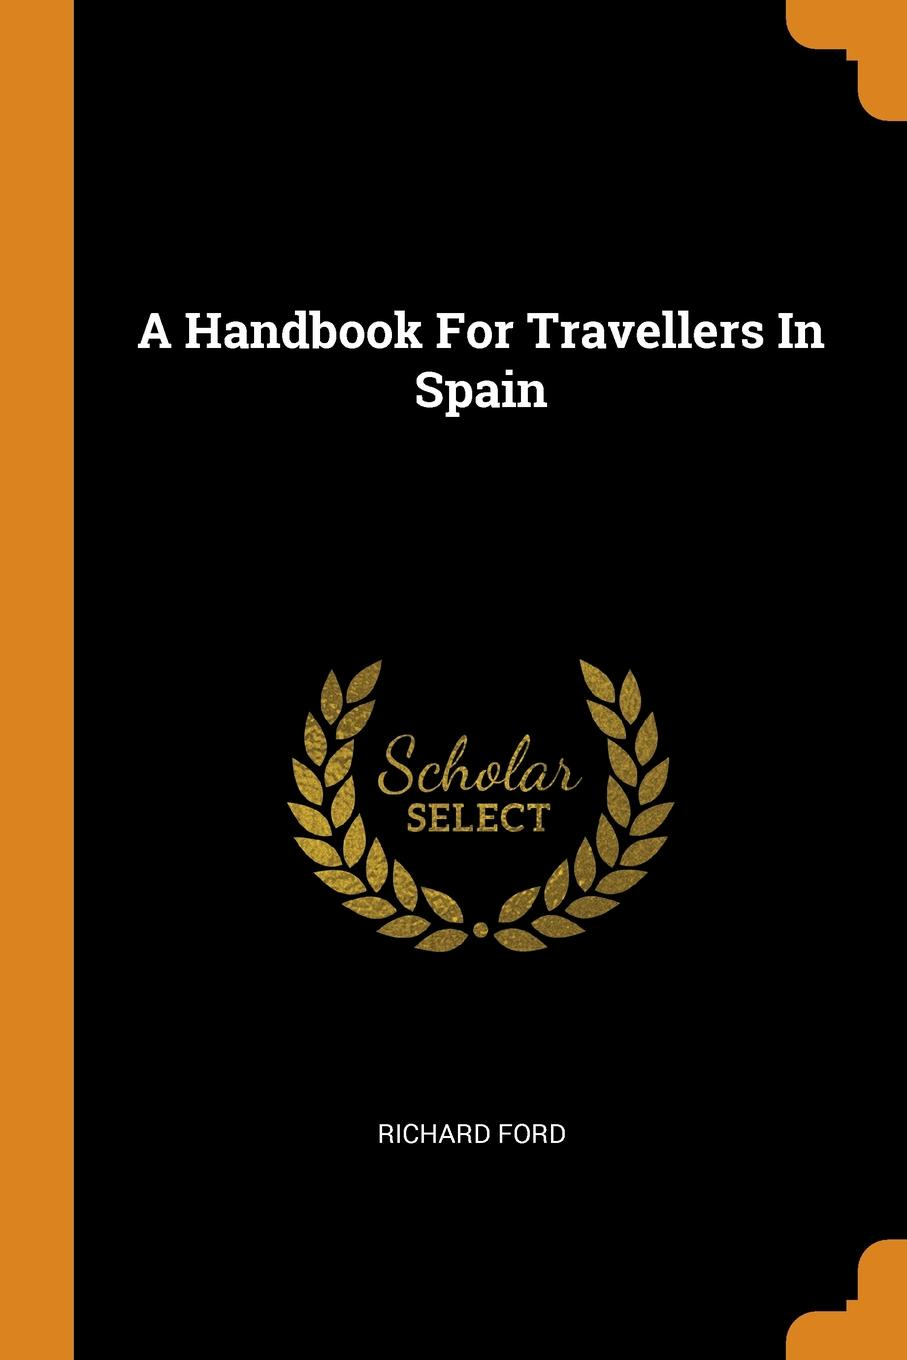 Фото - Richard Ford A Handbook For Travellers In Spain richard ford a handbook for travellers in spain